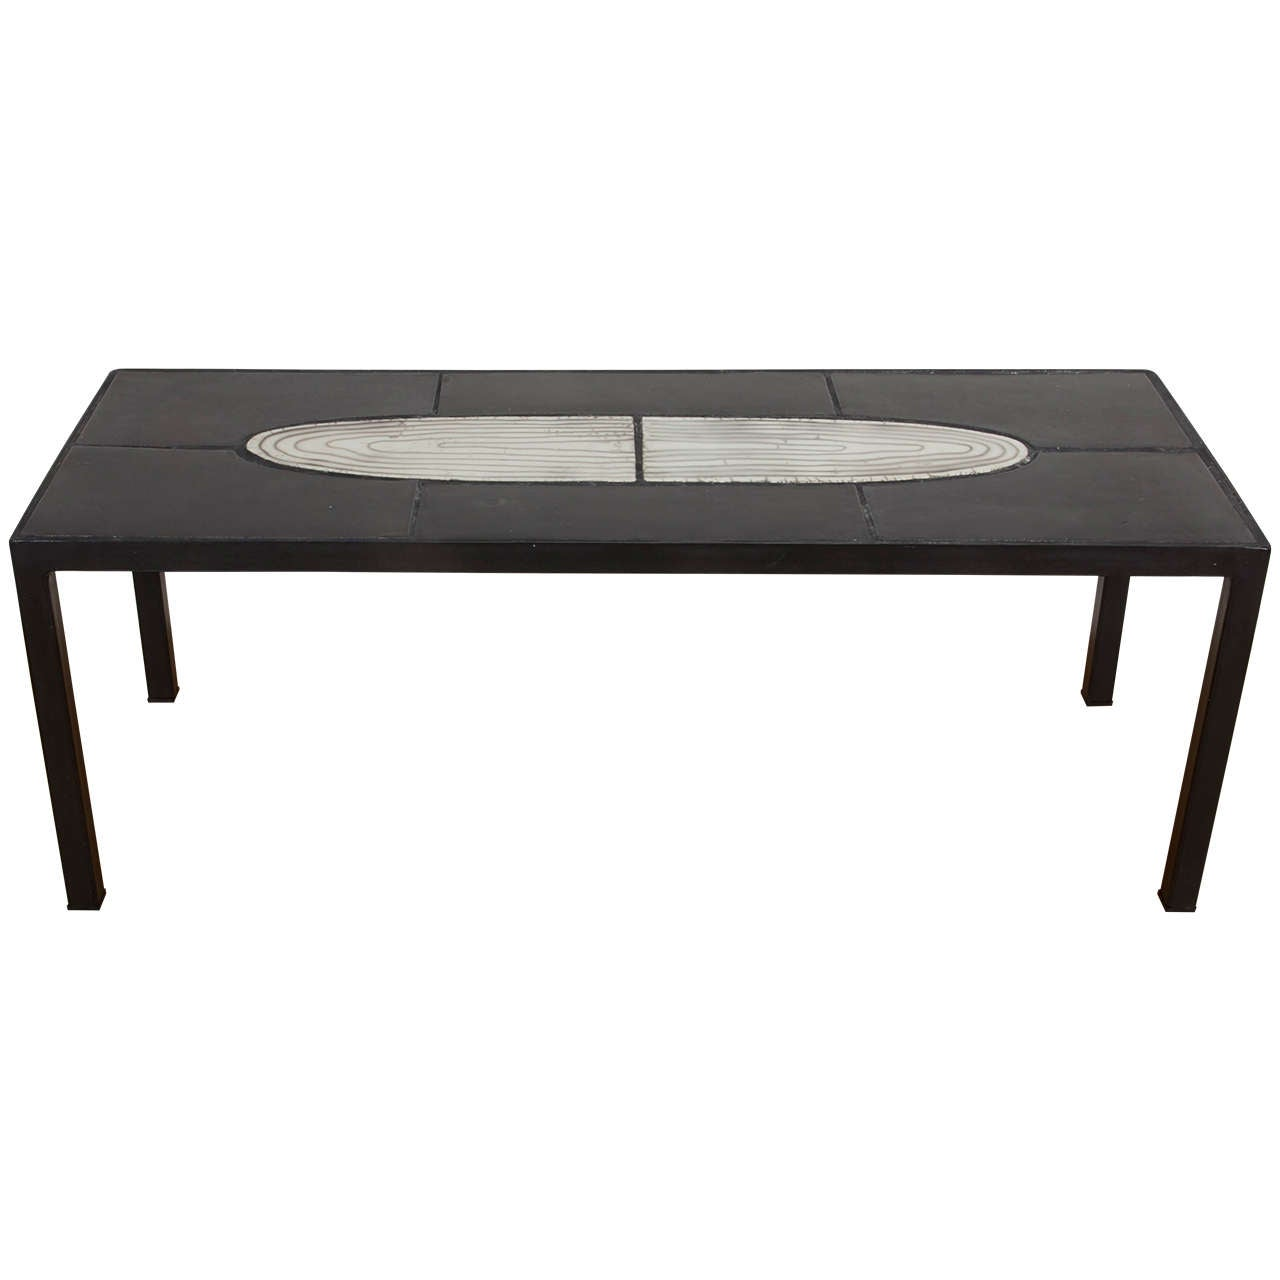 French Contemporary Ceramic Coffee Table